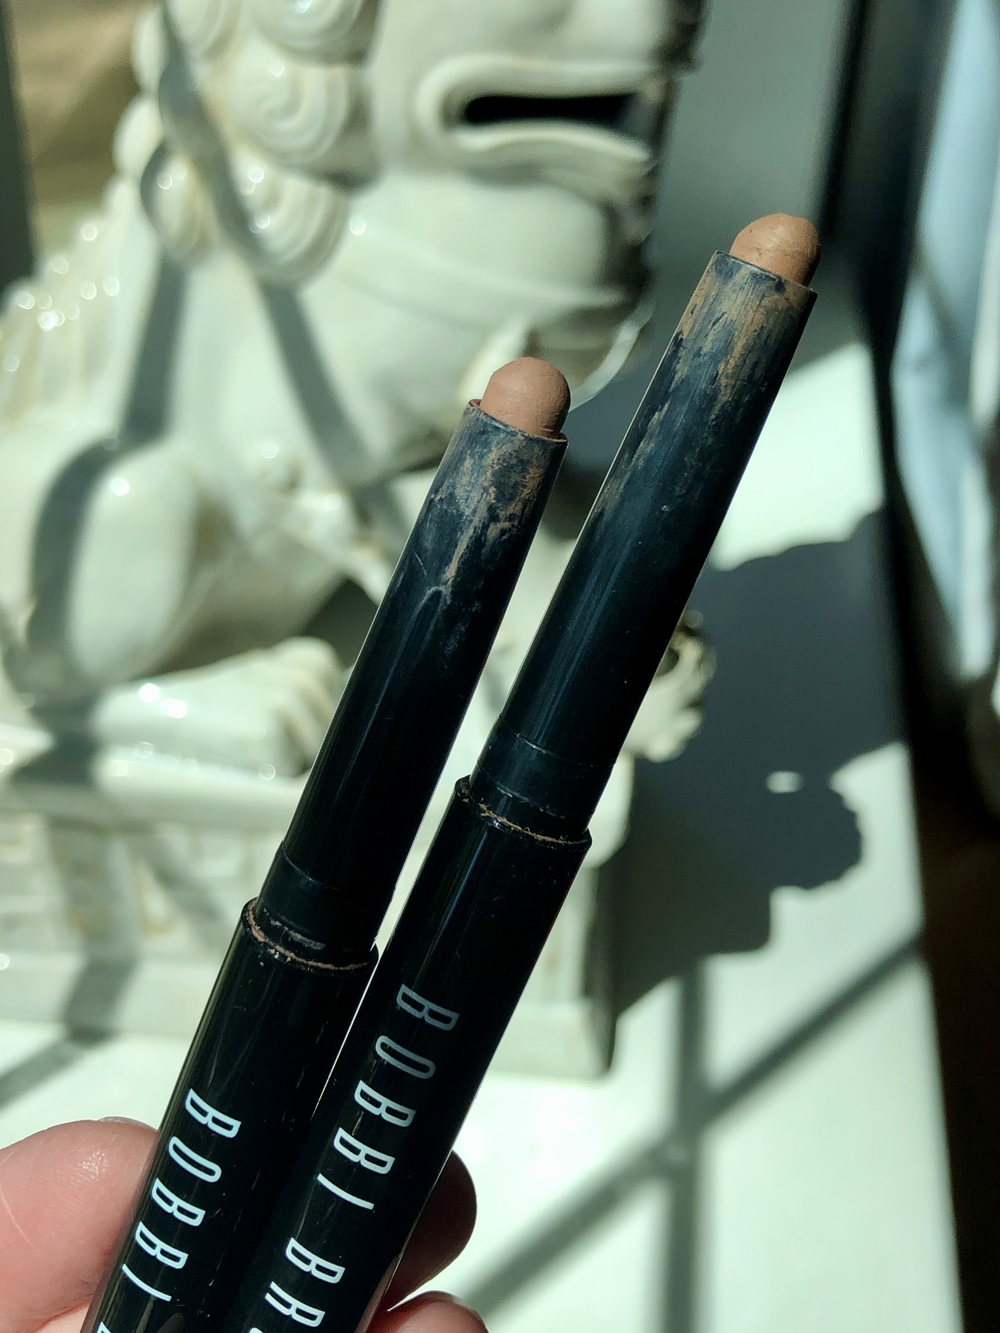 Bobbi Brown Long-Wear Cream Shadow Sticks in Nude Beach and Taupe, which are a few of my go-to everyday eyeshadows